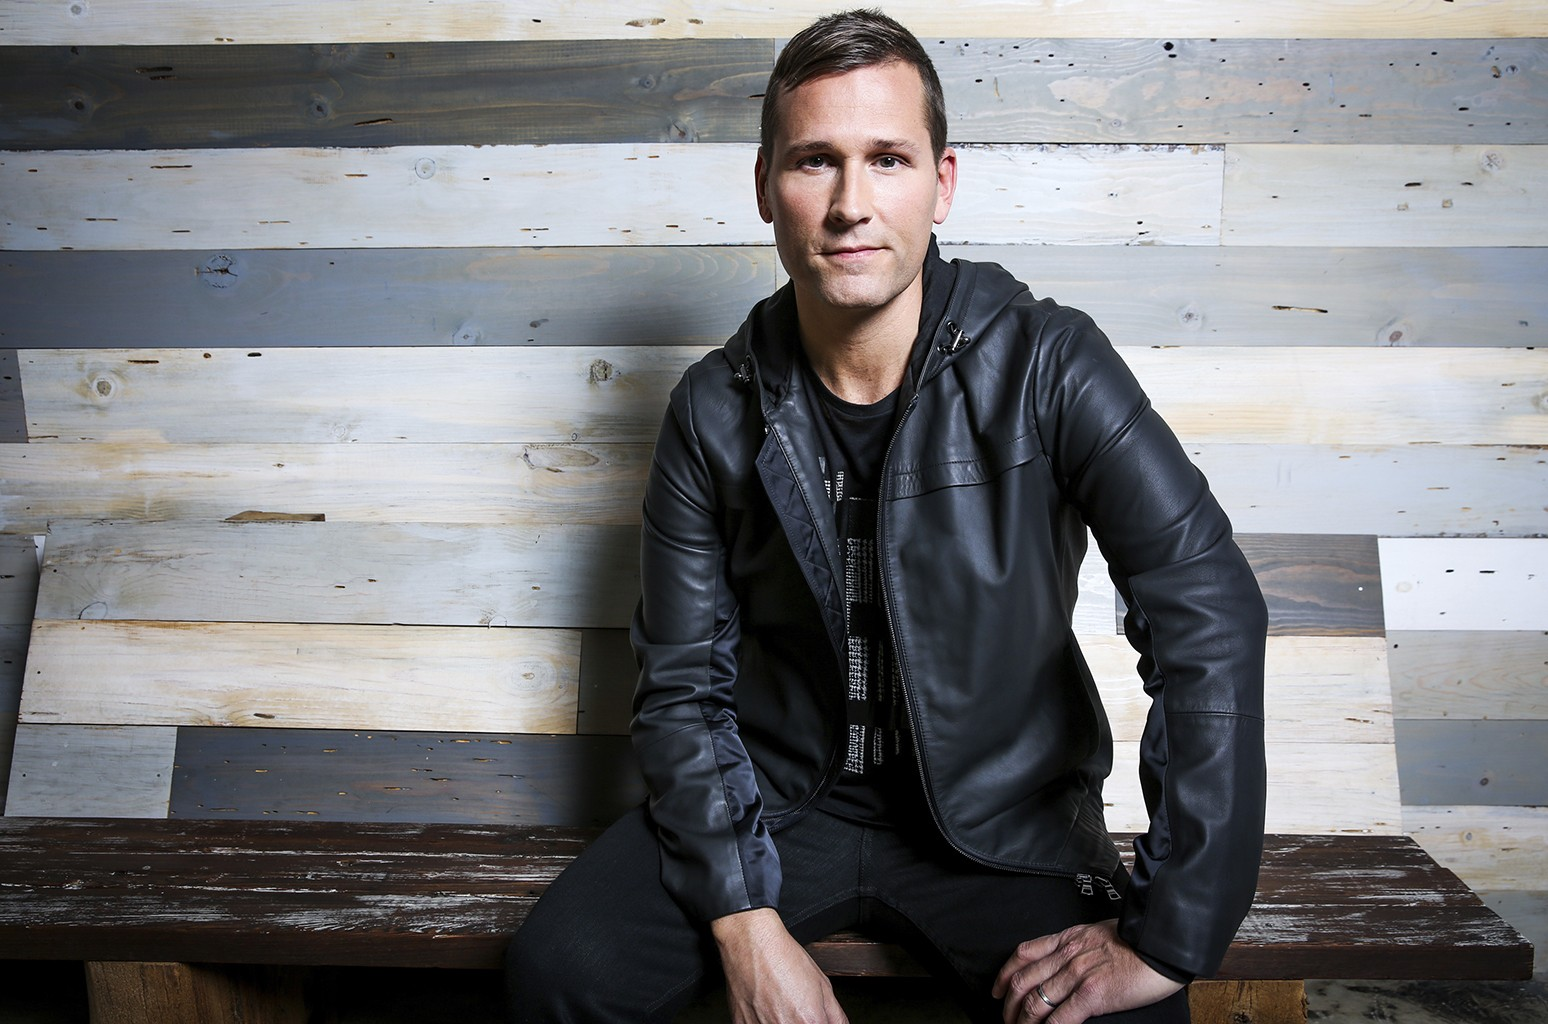 Kaskade photographed at Edge Studios in Los Angeles on Oct. 6, 2016.